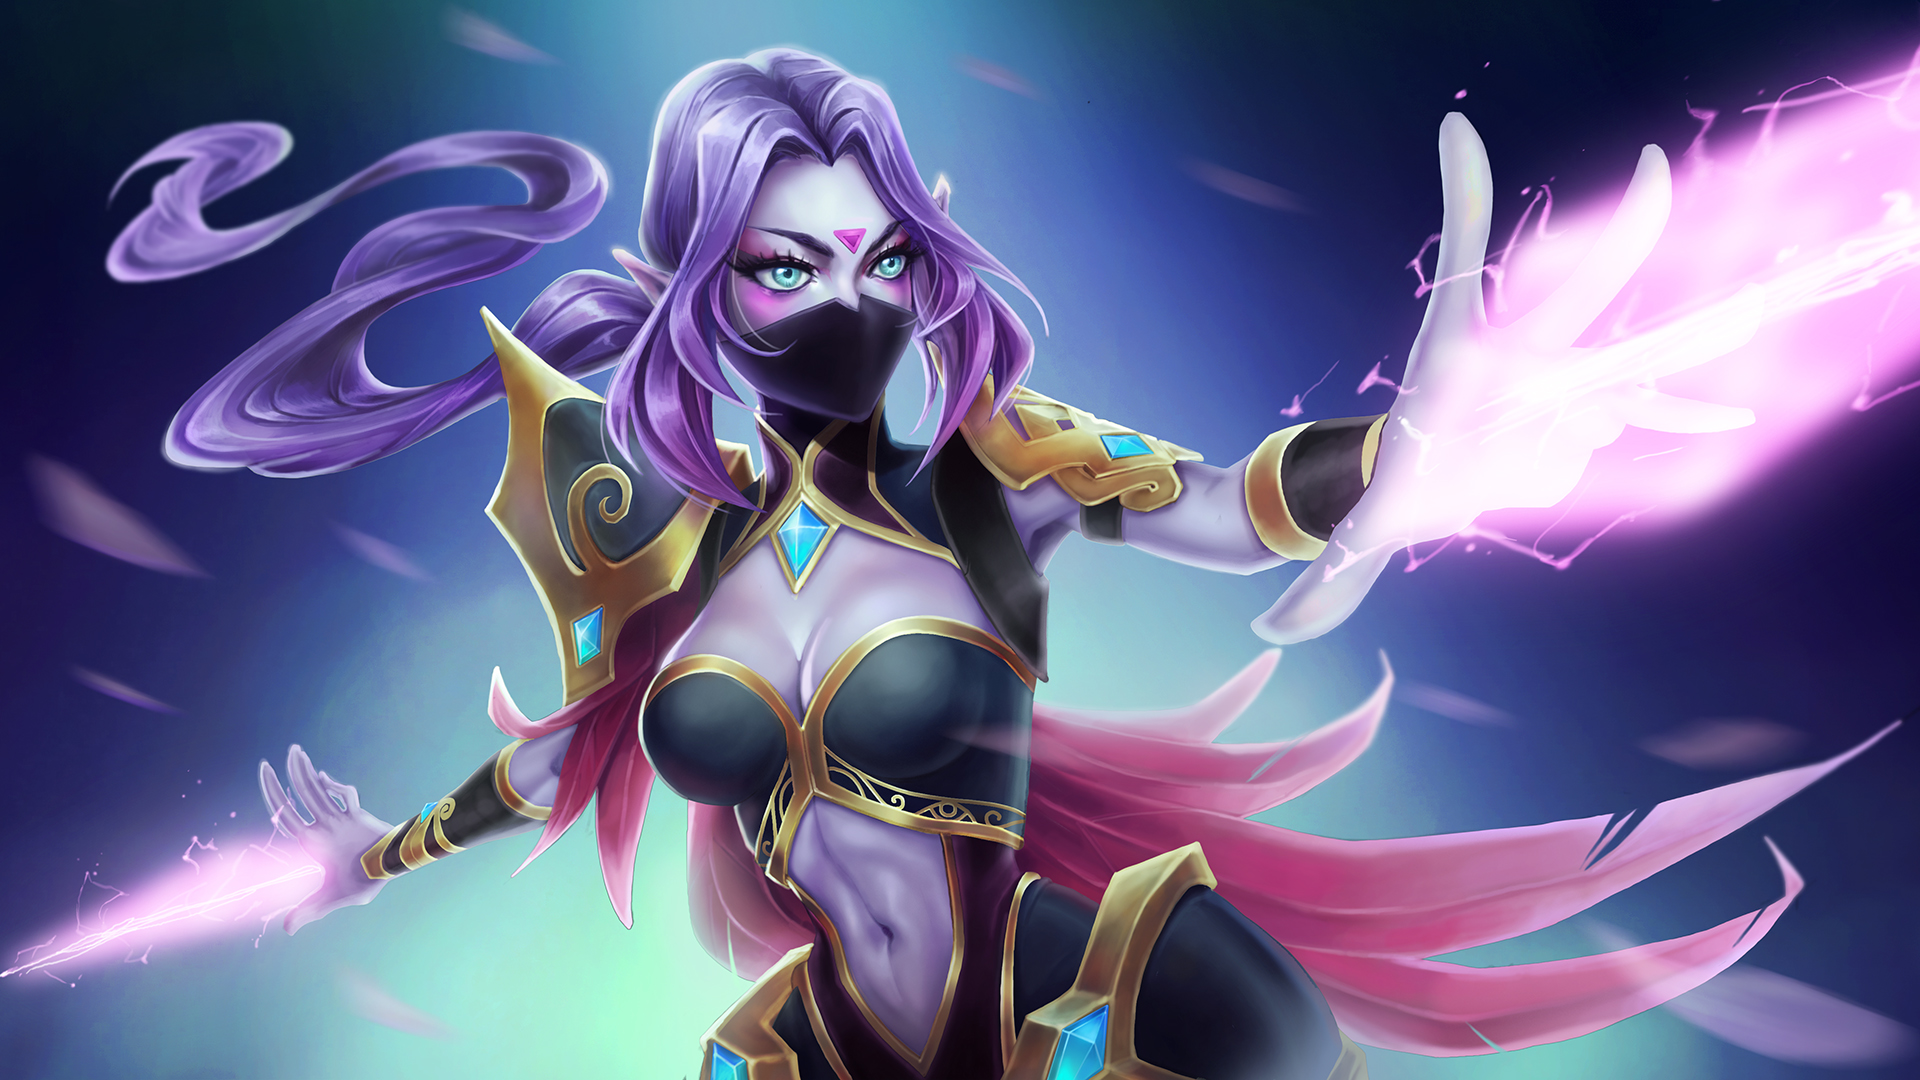 Templar Assassin dota 2 hd wallpapers 1920x1080